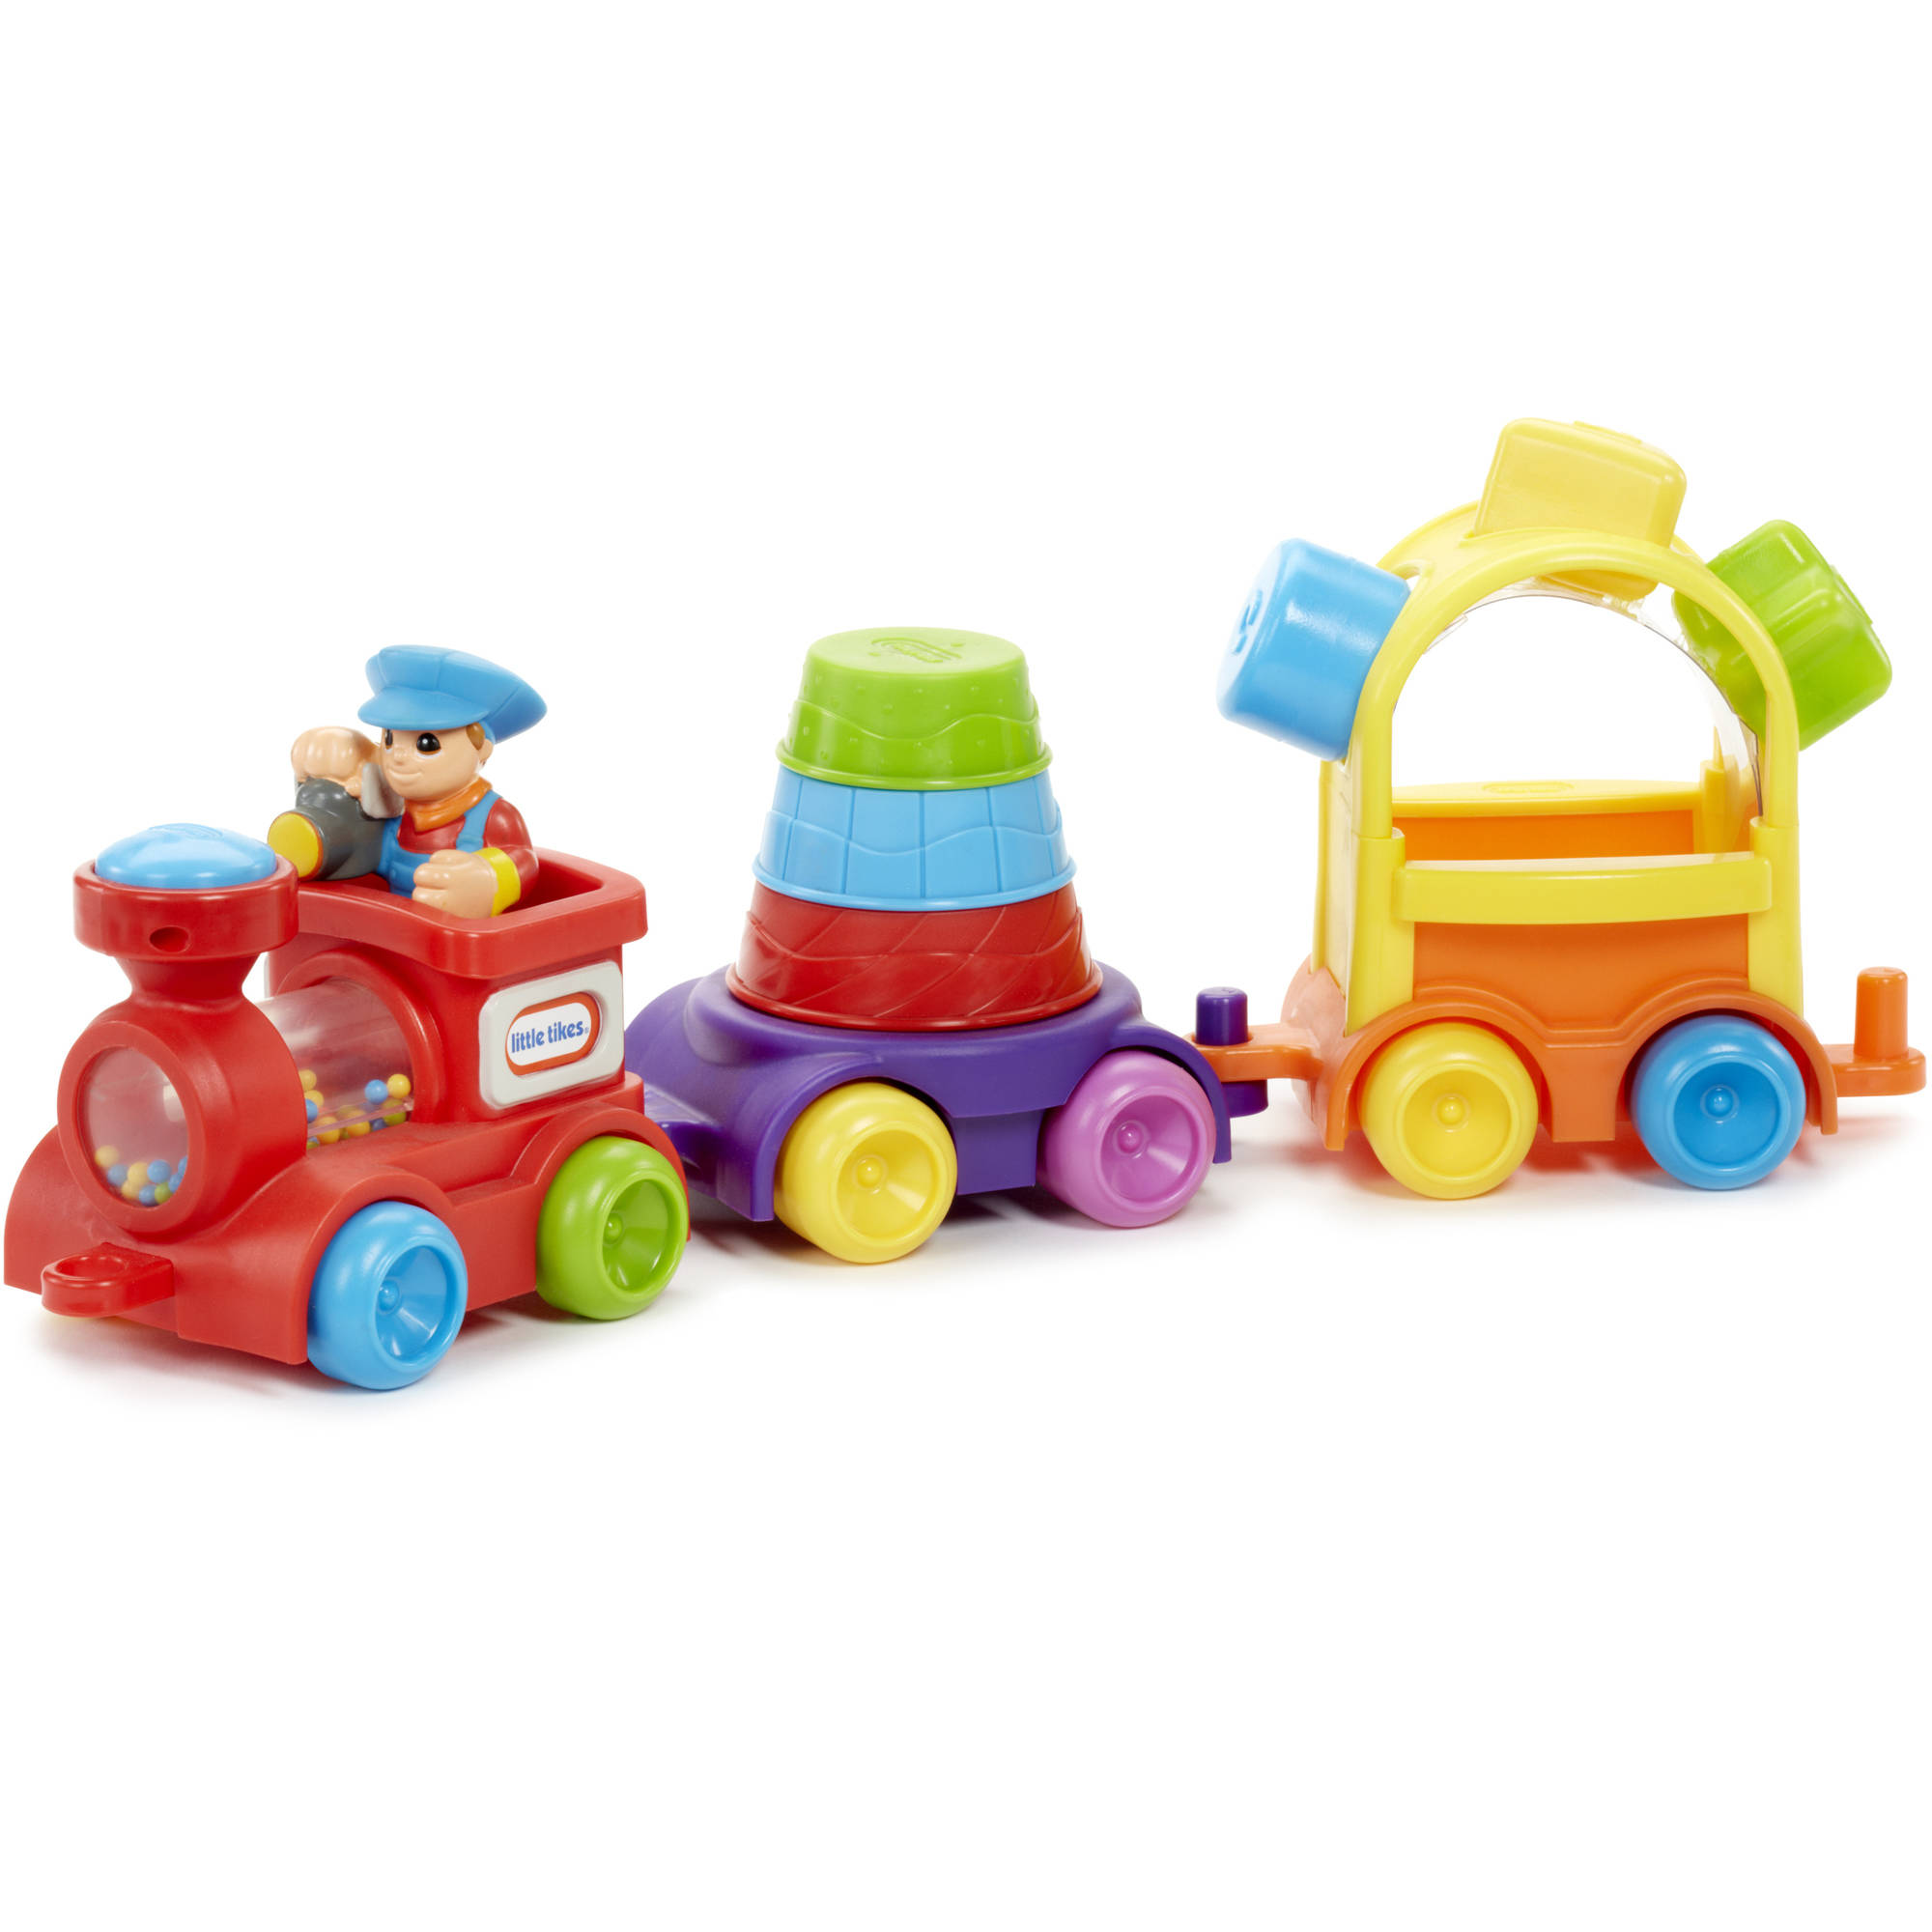 Little Tikes 3-in-1 Sort & Stack Train by Little Tikes